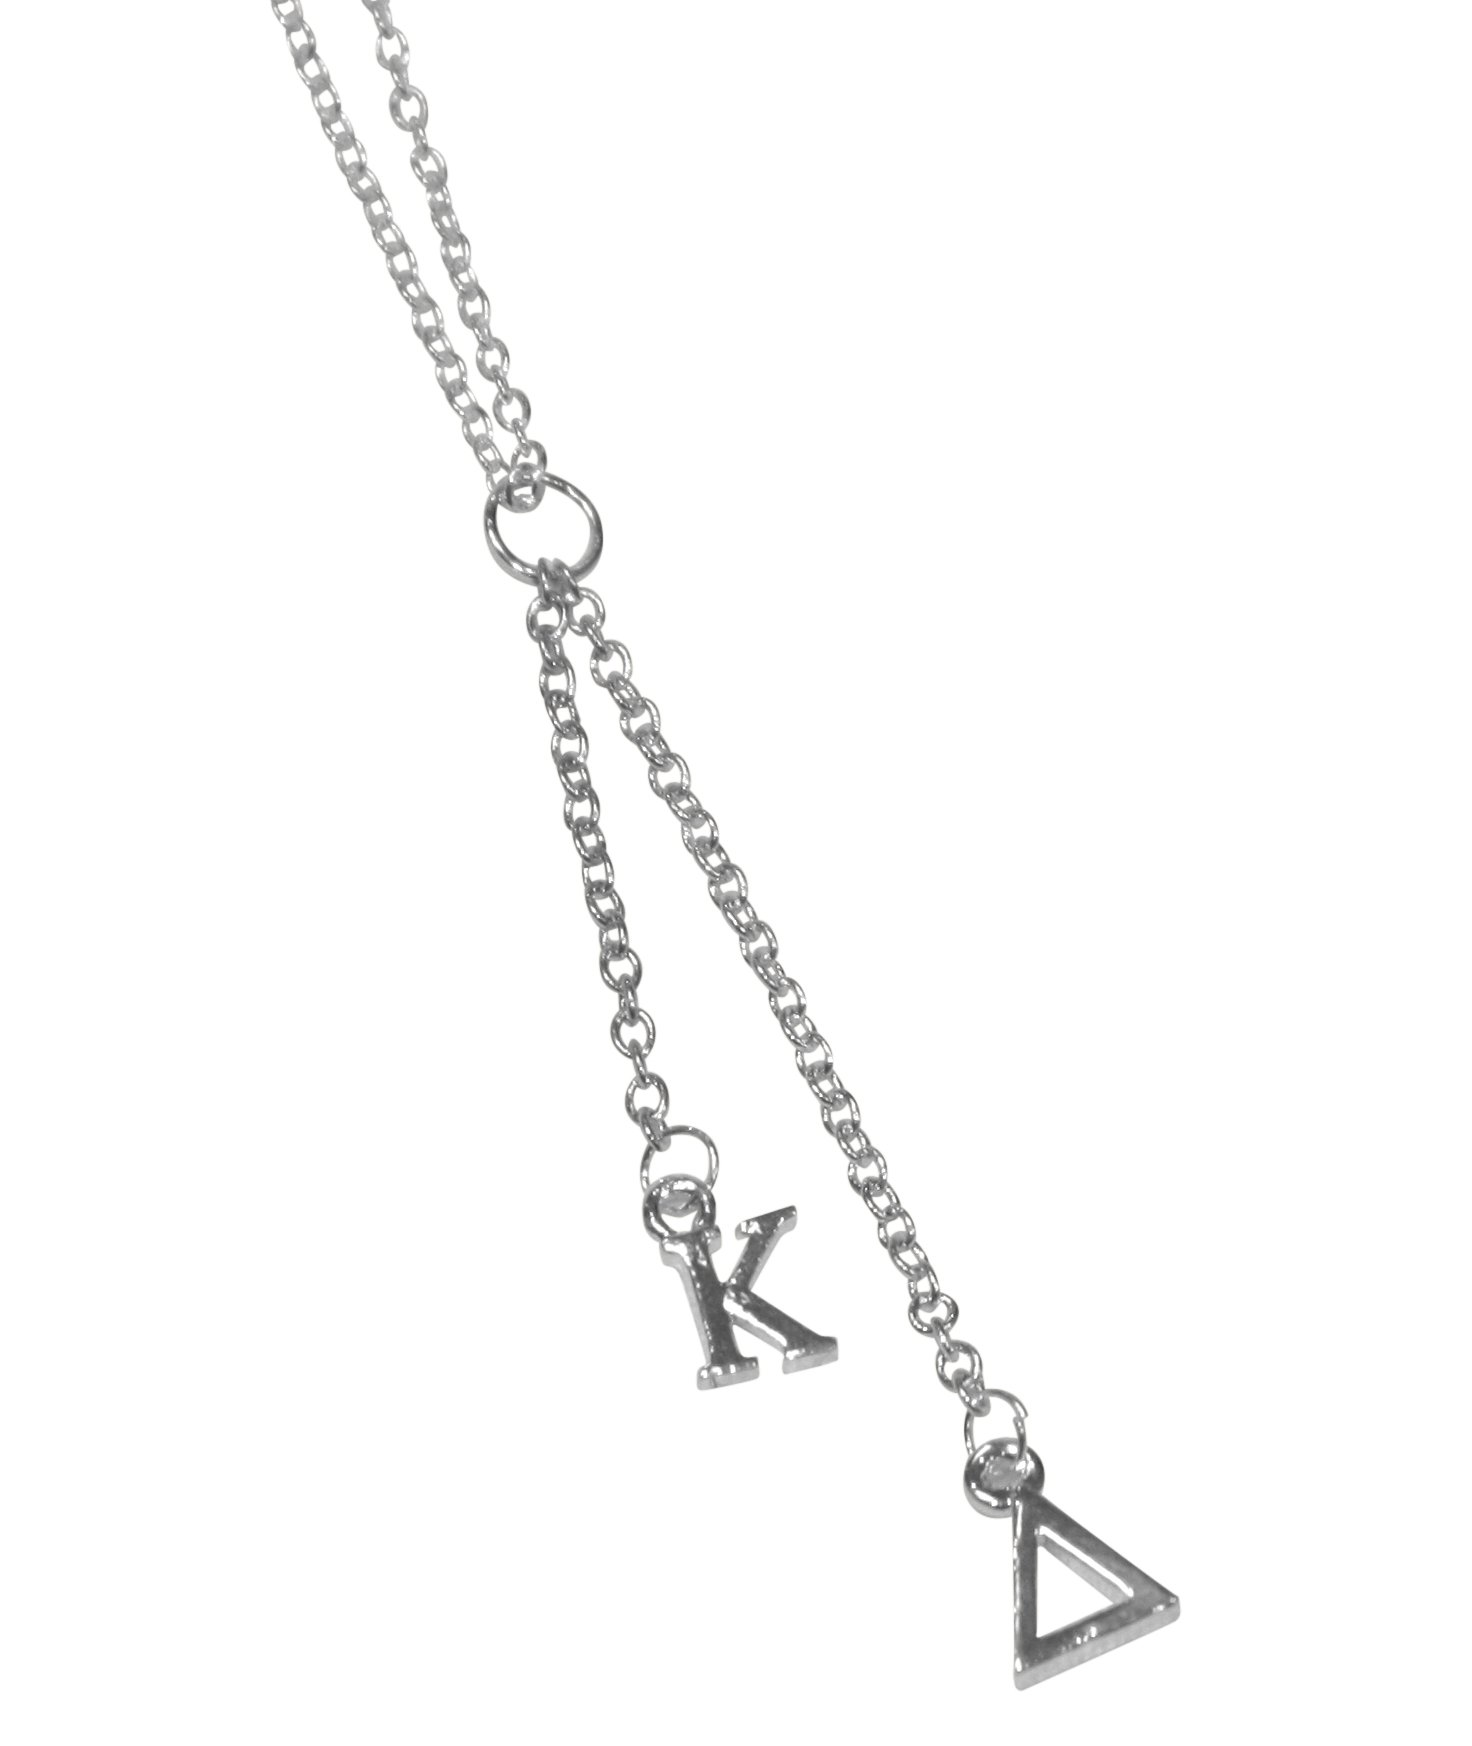 Kappa Delta Sorority Silver Dangle Necklace by Key Your Spirit (Image #1)